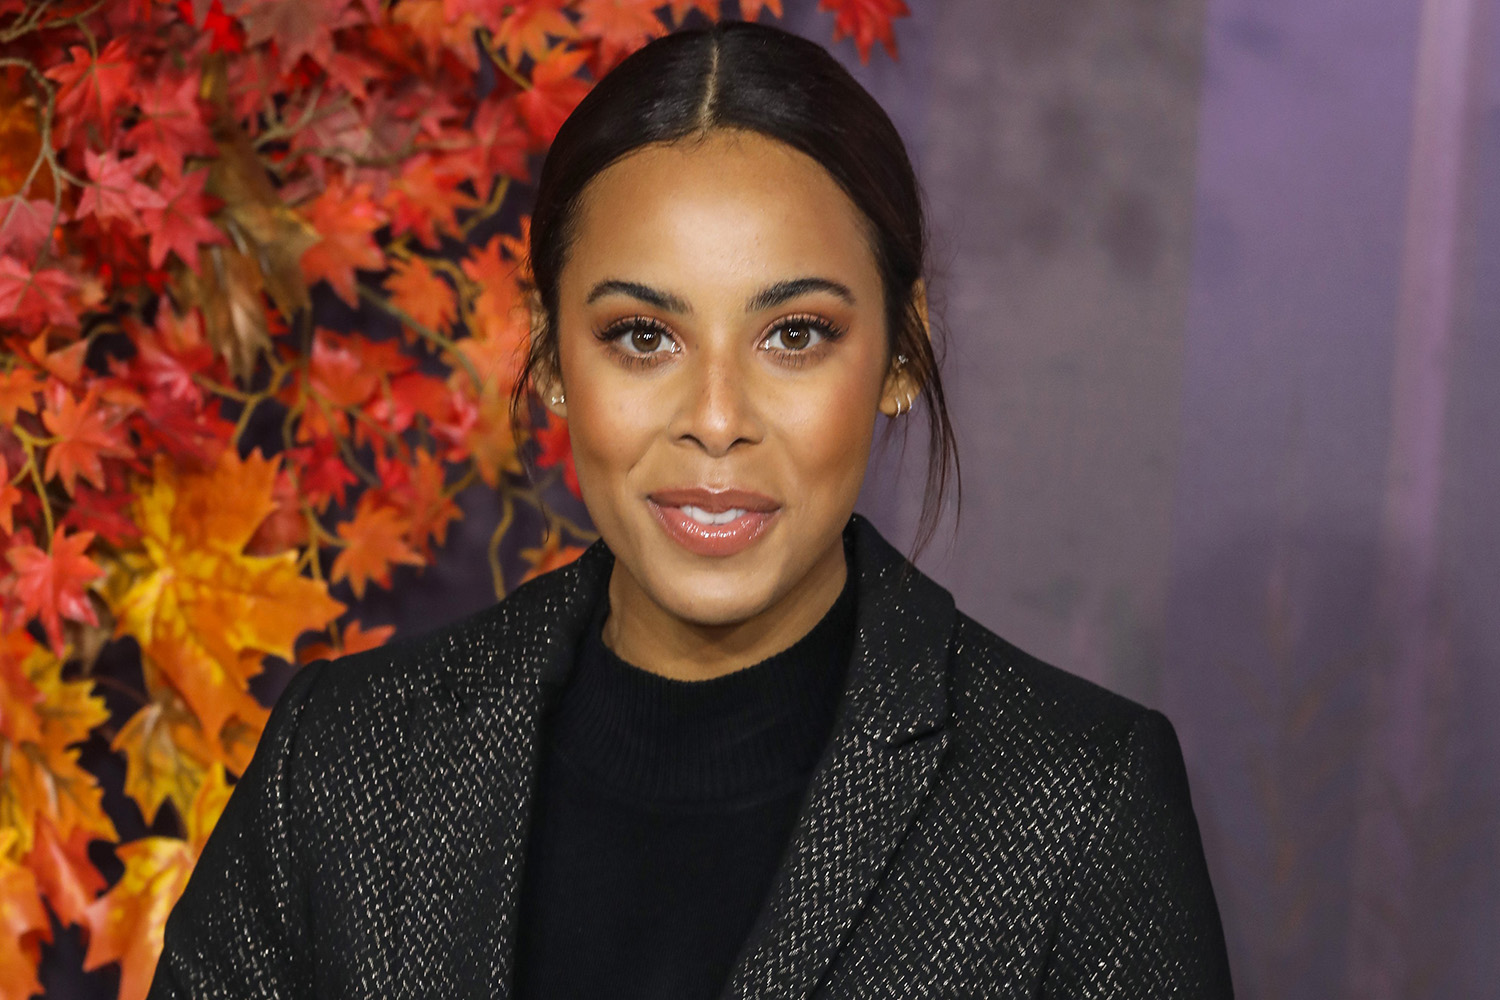 Rochelle Humes says unborn son is 'spitting image' of daughter after 4D scan